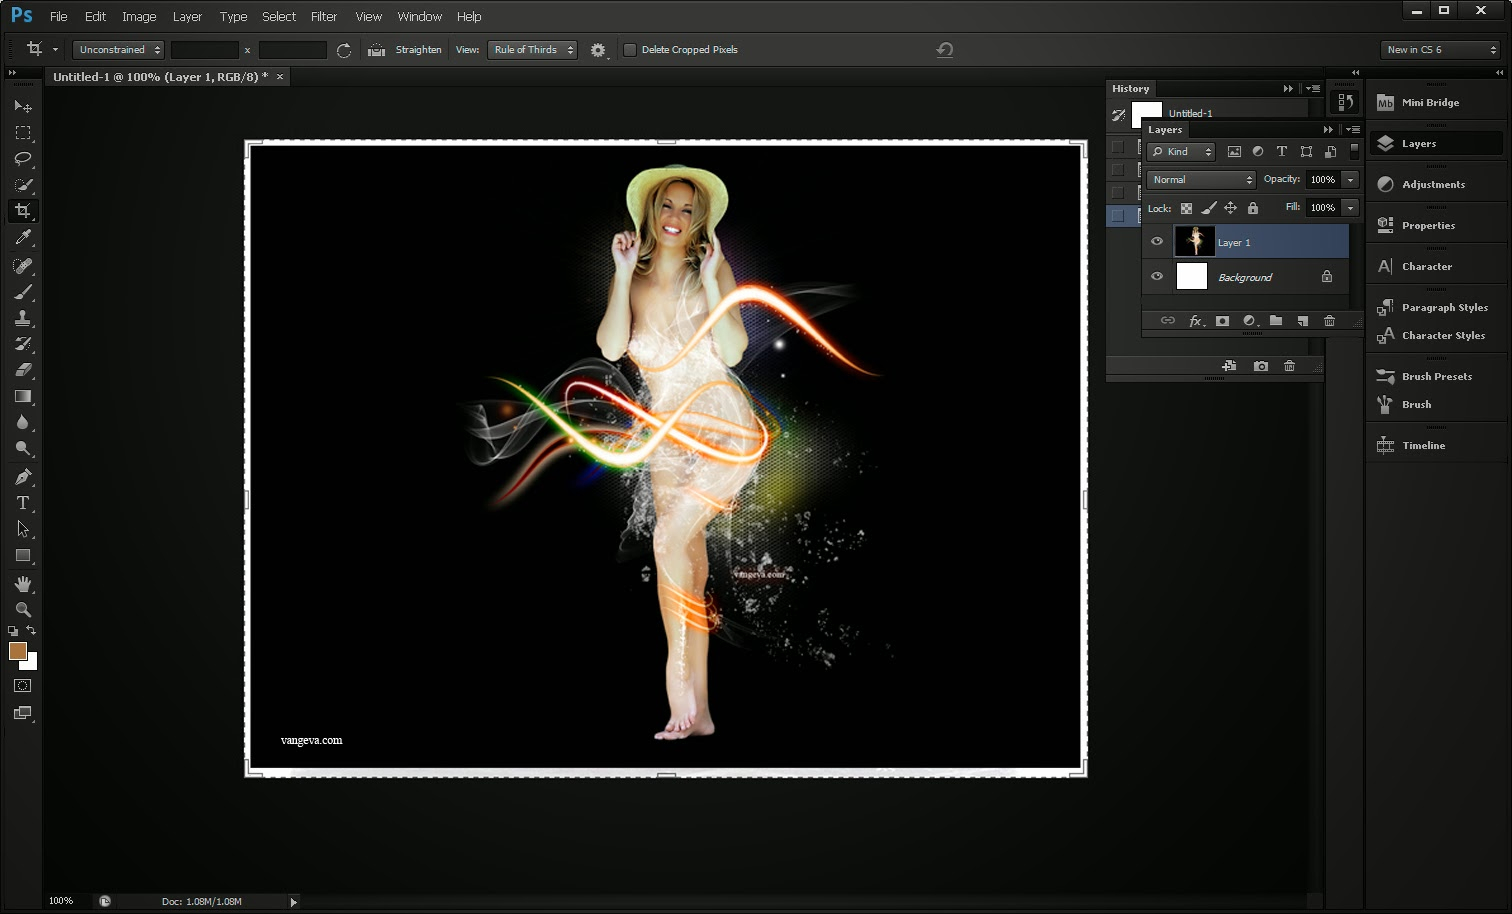 adobe photoshop cs6 serial number and cs6 full crack download 100 working